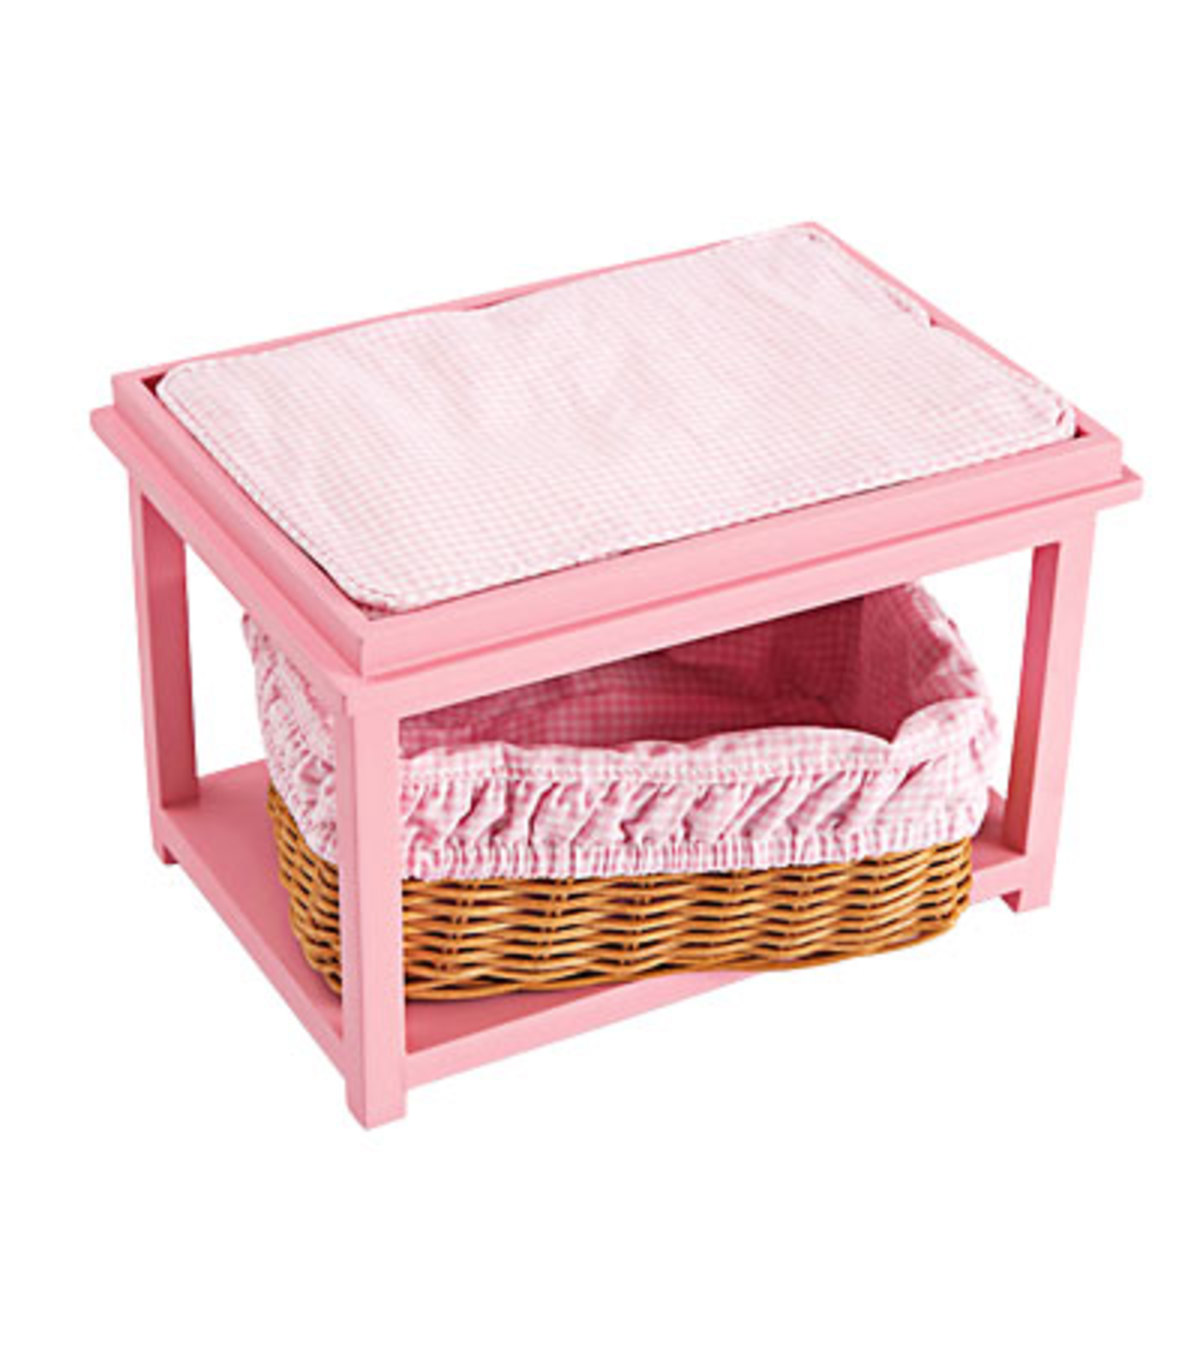 Changing Table for Penelope Peapod